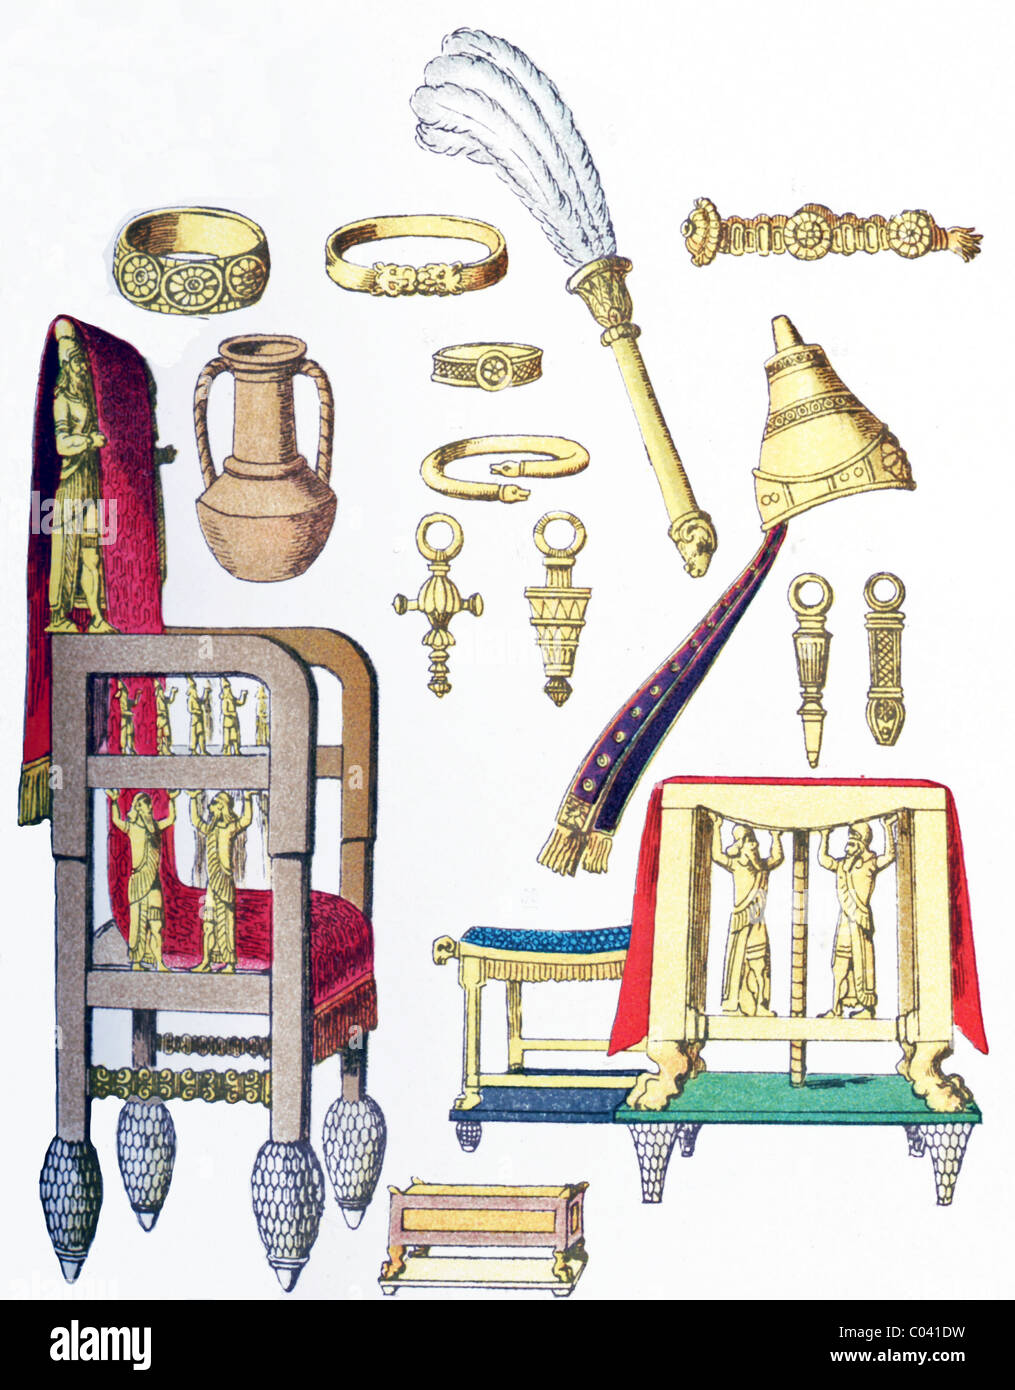 Ancient Assyrian items: four armlets, fan, diadem, water vessel, four ear pendants, tiara, throne, footstool, seat, - Stock Image